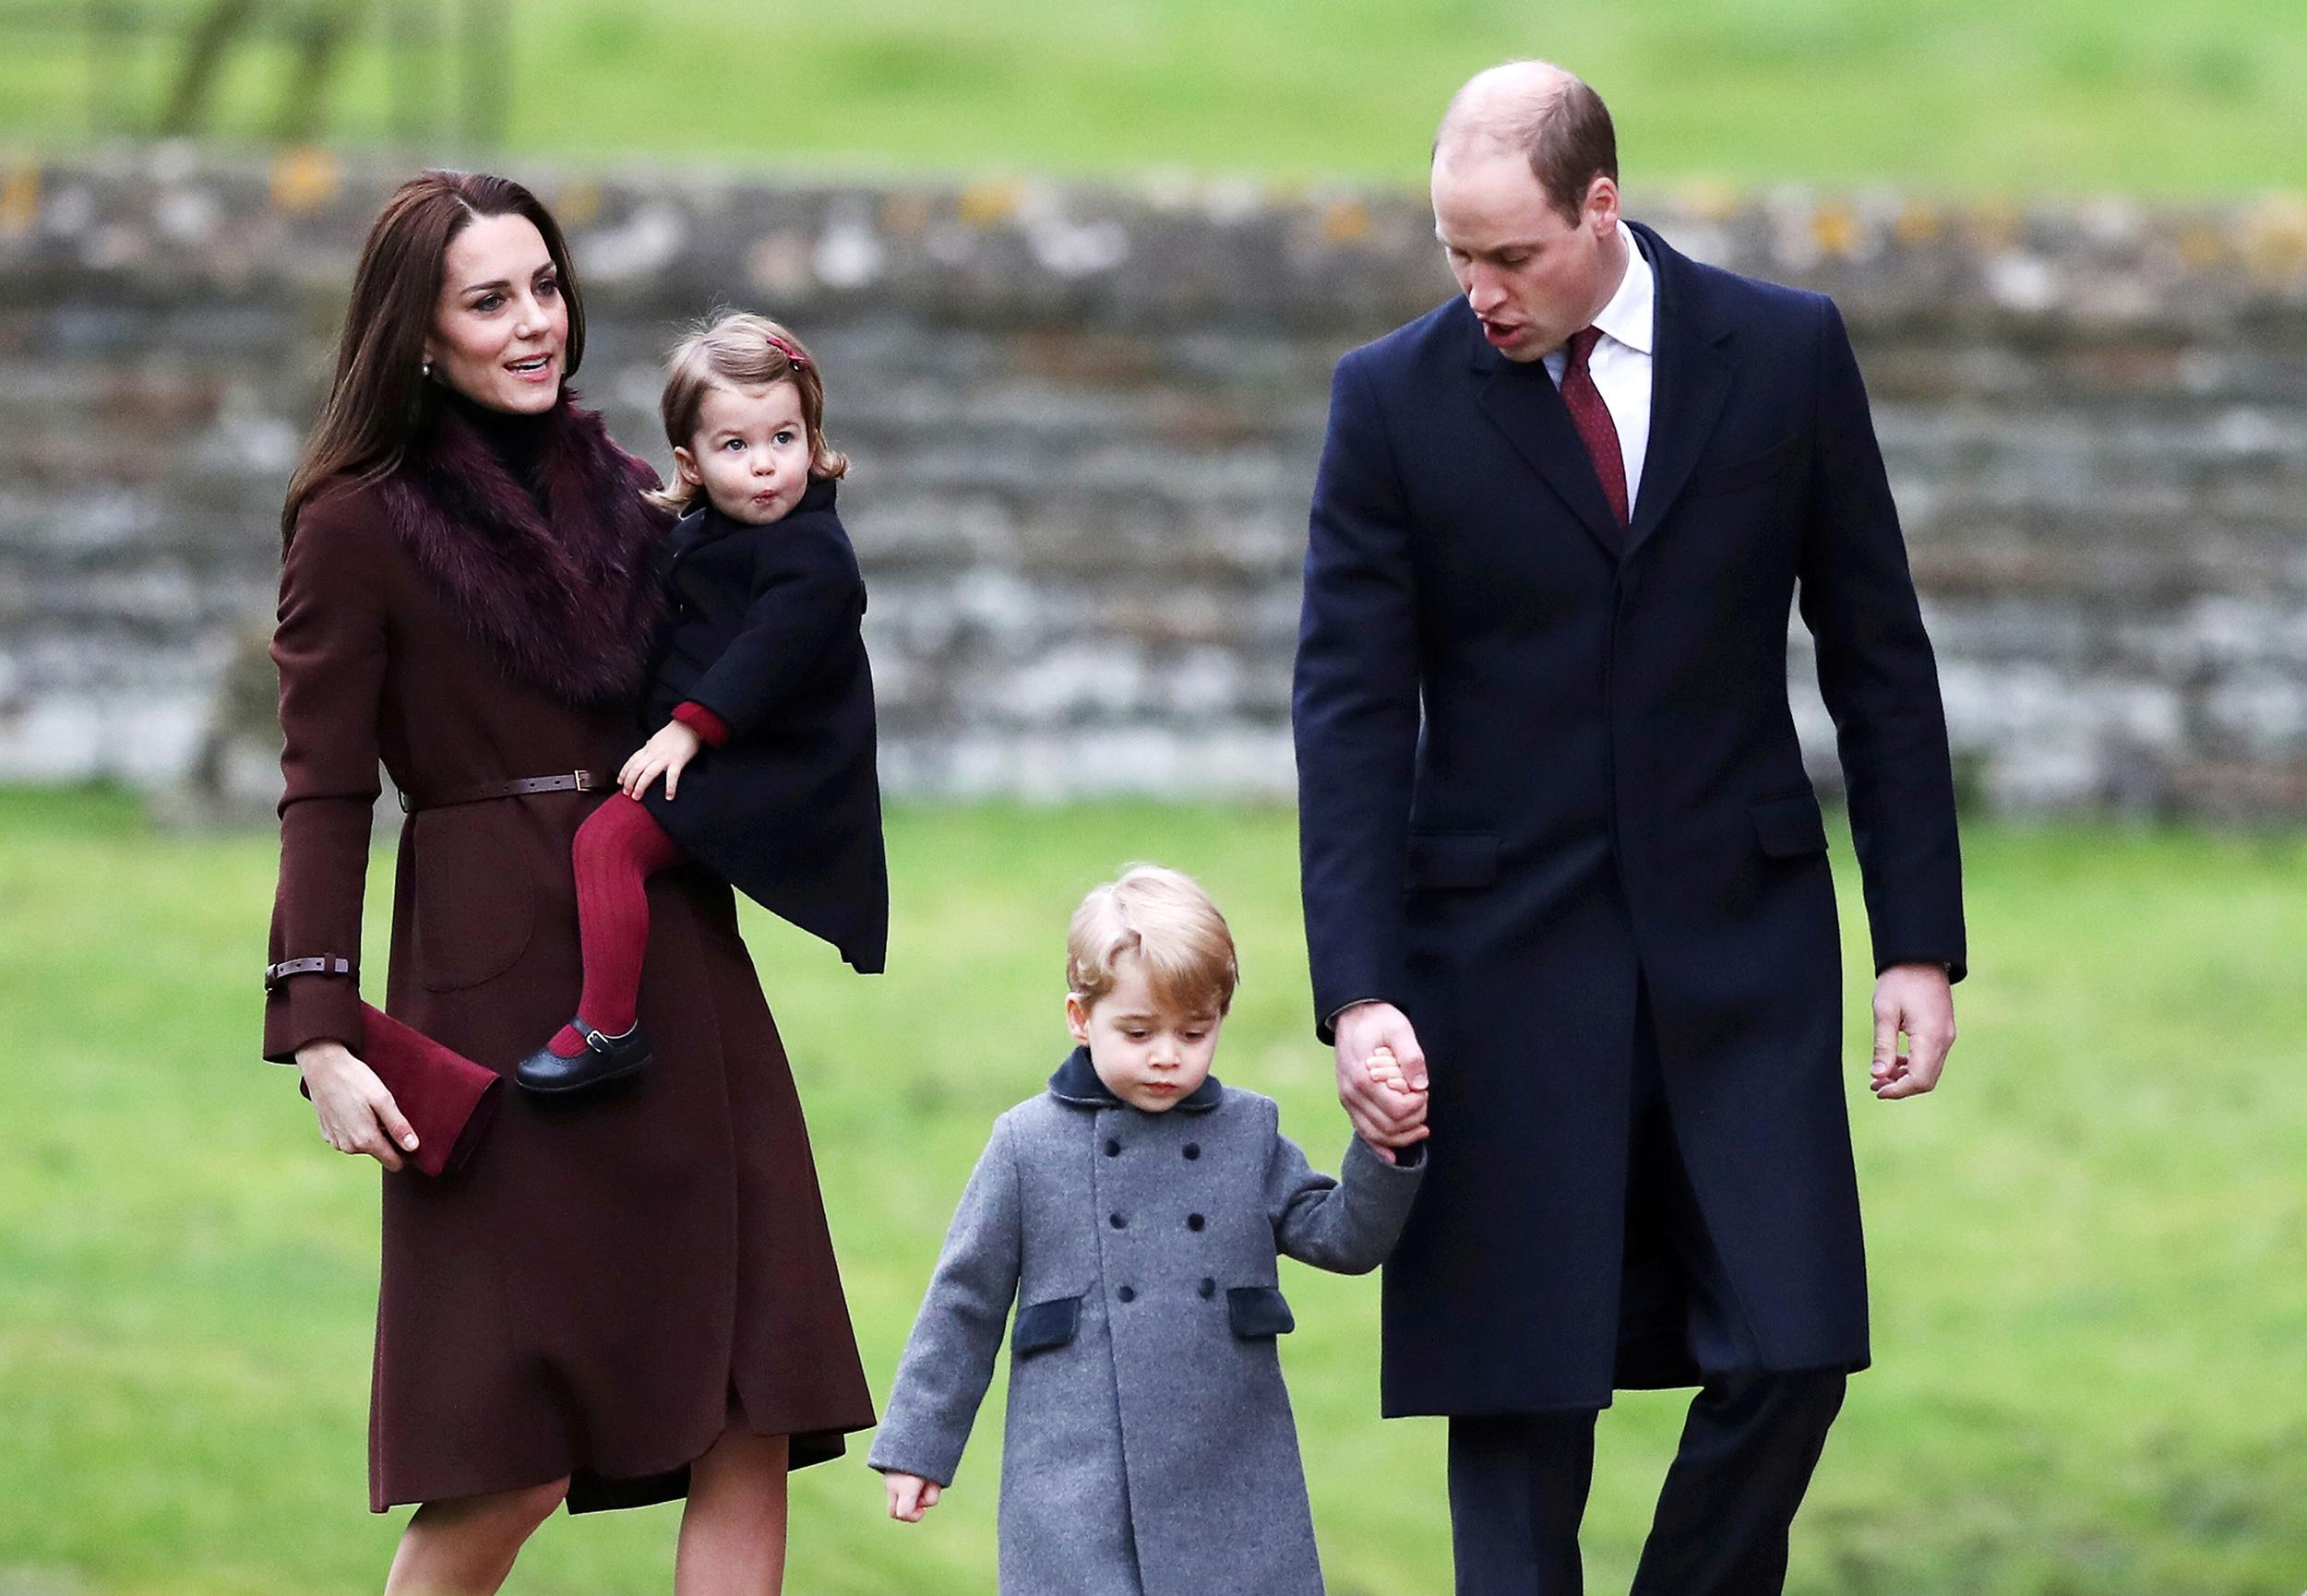 Prince William, the Duke of Cambridge (R), his wife Catherine, The Duchess of Cambridge (L), Prince George (2nd R) and Princess Charlotte arrive to attend the morning Christmas Day service at St Mark's Church in Englefield, near Bucklebury in southern England, Britain, December 25, 2016. REUTERS/Andrew Matthews/Pool